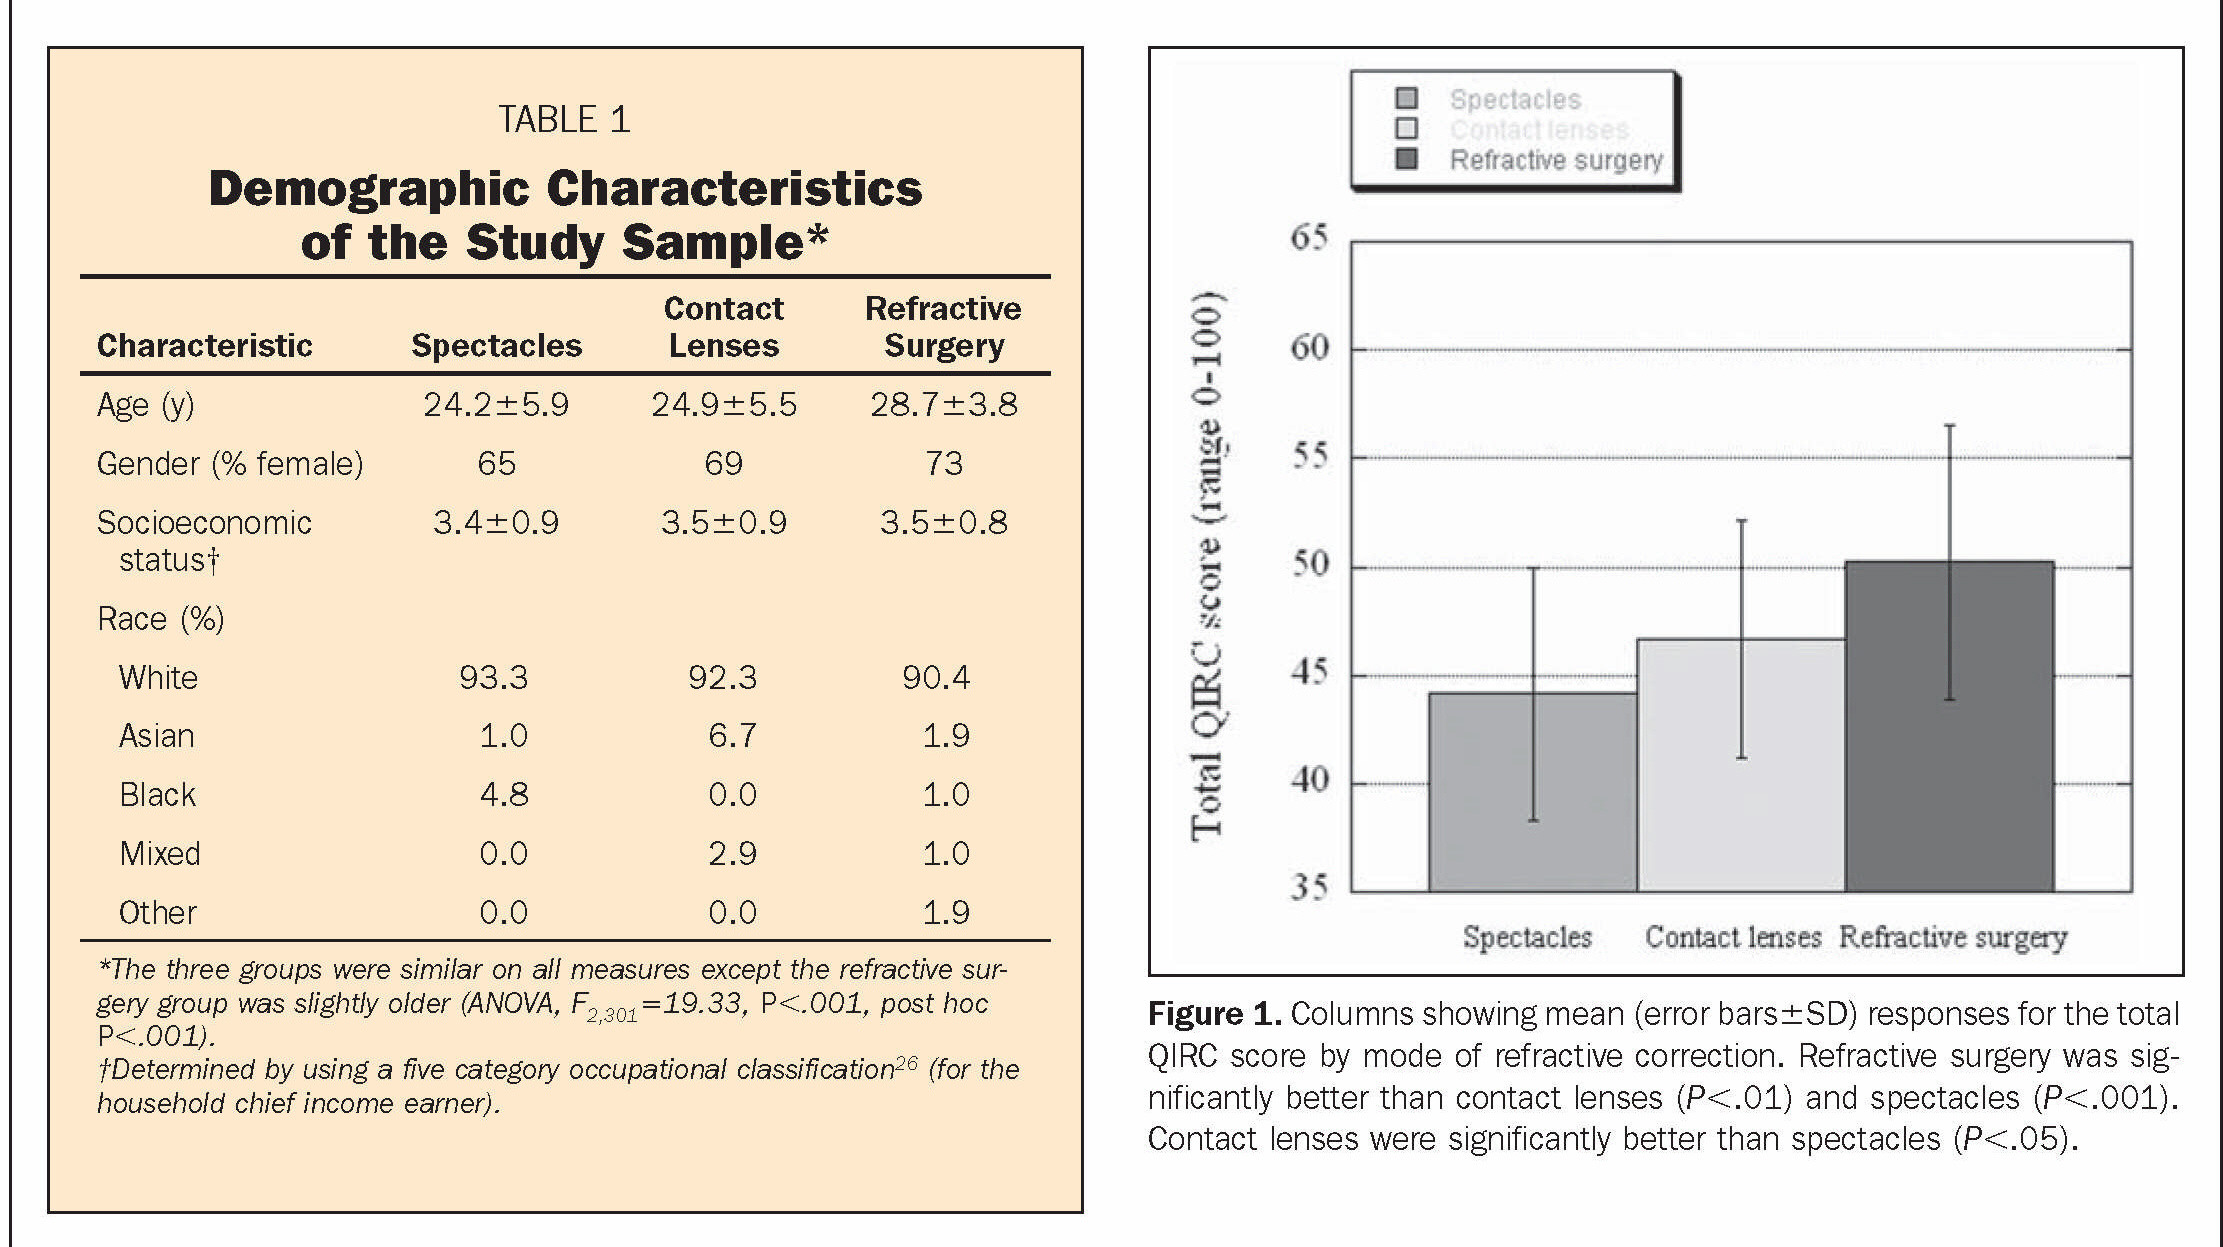 TABLE 1Demographic Characteristics of the Study SampleFigure 1. Columns showing mean (error bars±SD) responses for the total QIRC score by mode of refractive correction. Refractive surgery was significantly better than contact lenses (P<.01) and spectacles (P<.001). Contact lenses were significantly better than spectacles (P<.05).